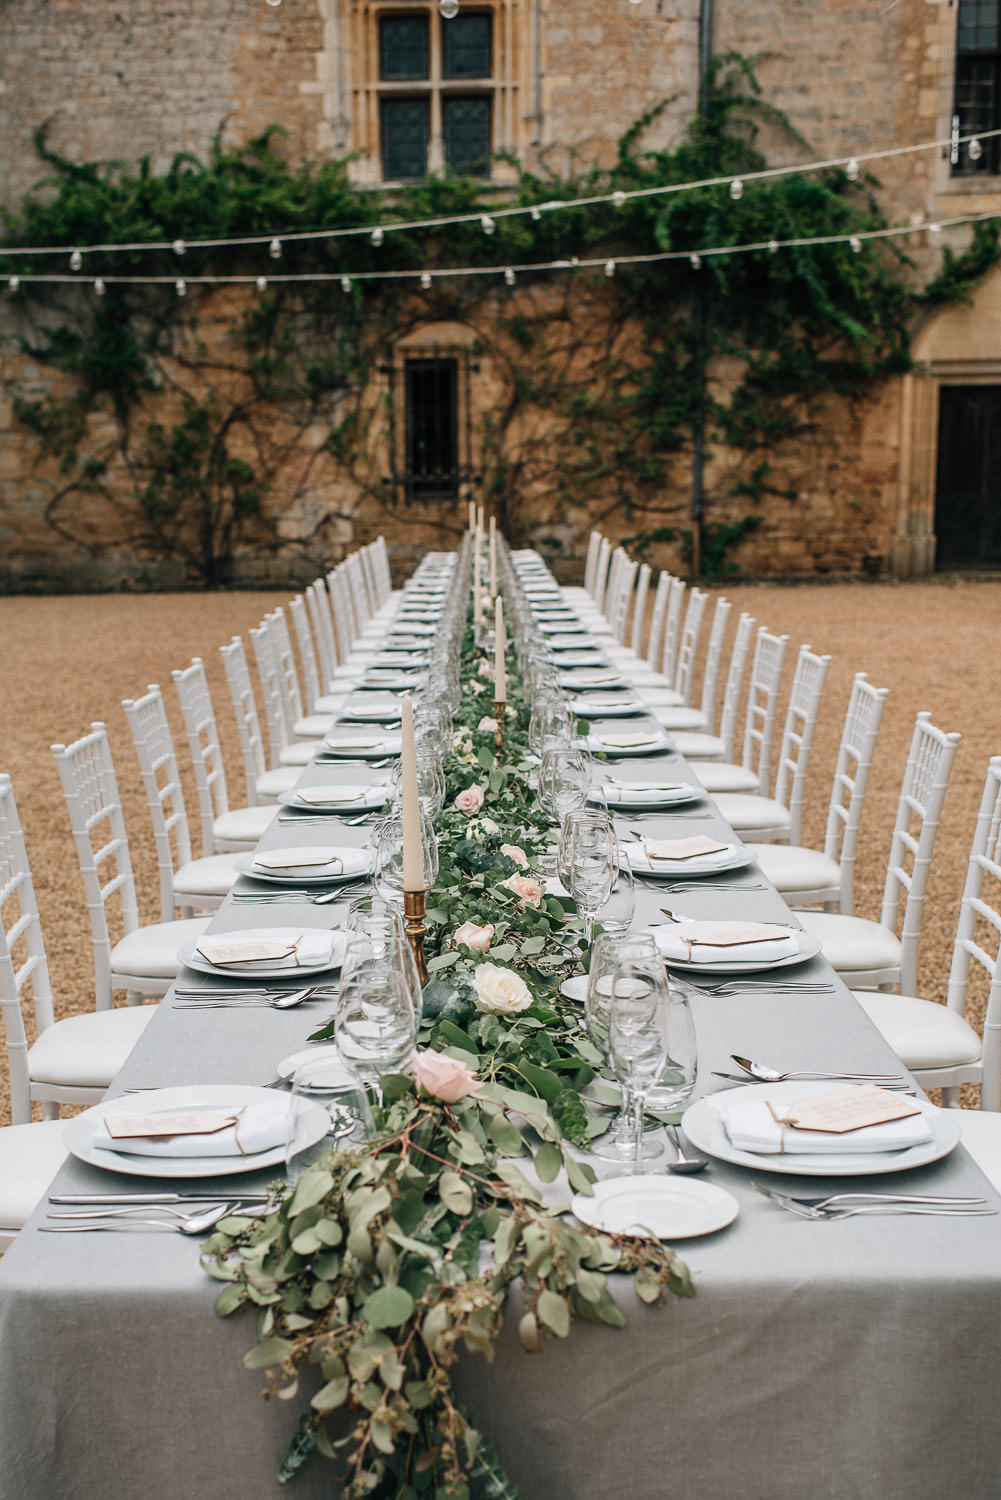 Table setting in chateau de la bourlie wedding by destination wedding photographer the shannons photography